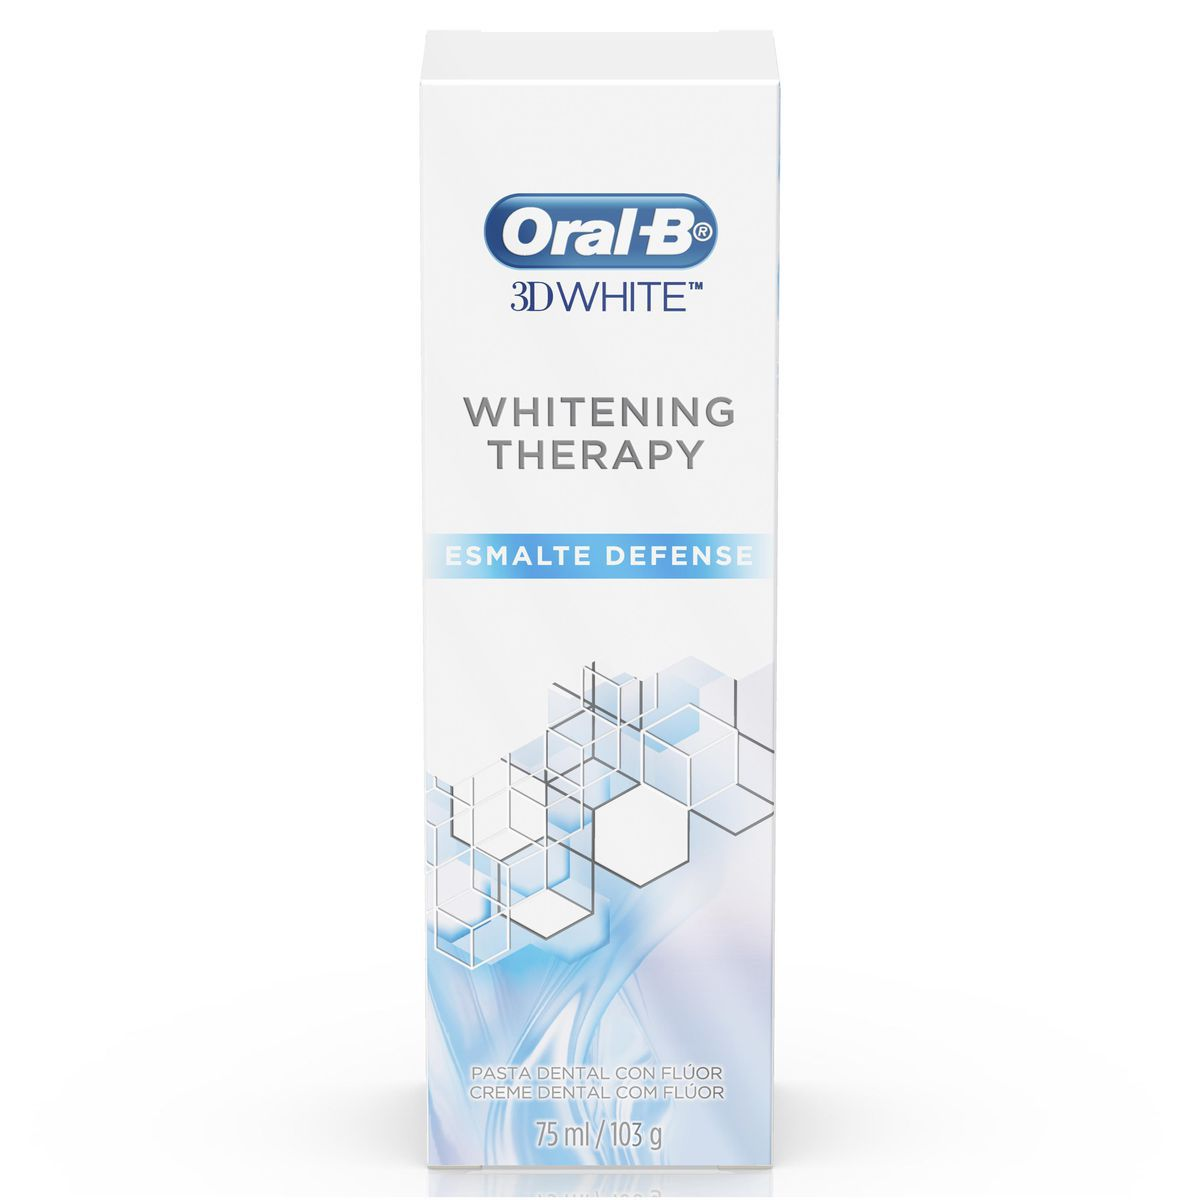 Creme Dental Oral-B 3D Whitening Therapy Esmalte Defense 103g